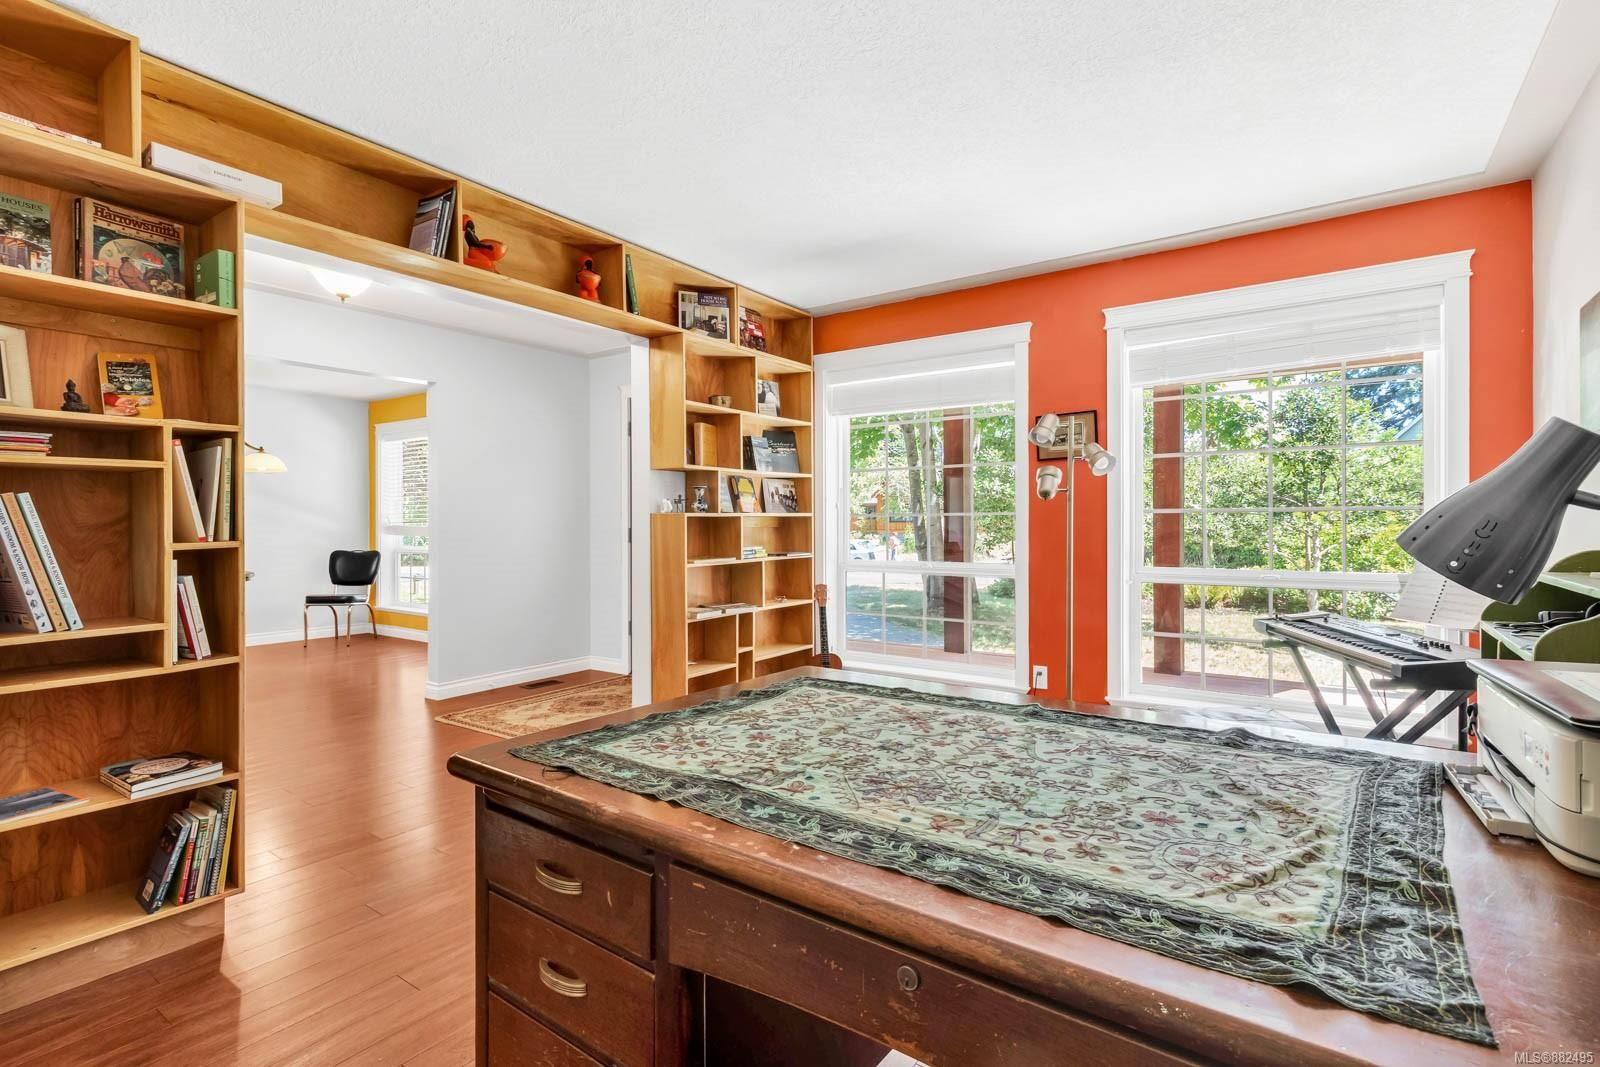 Photo 19: Photos: 375 Butchers Rd in : CV Comox (Town of) House for sale (Comox Valley)  : MLS®# 882495